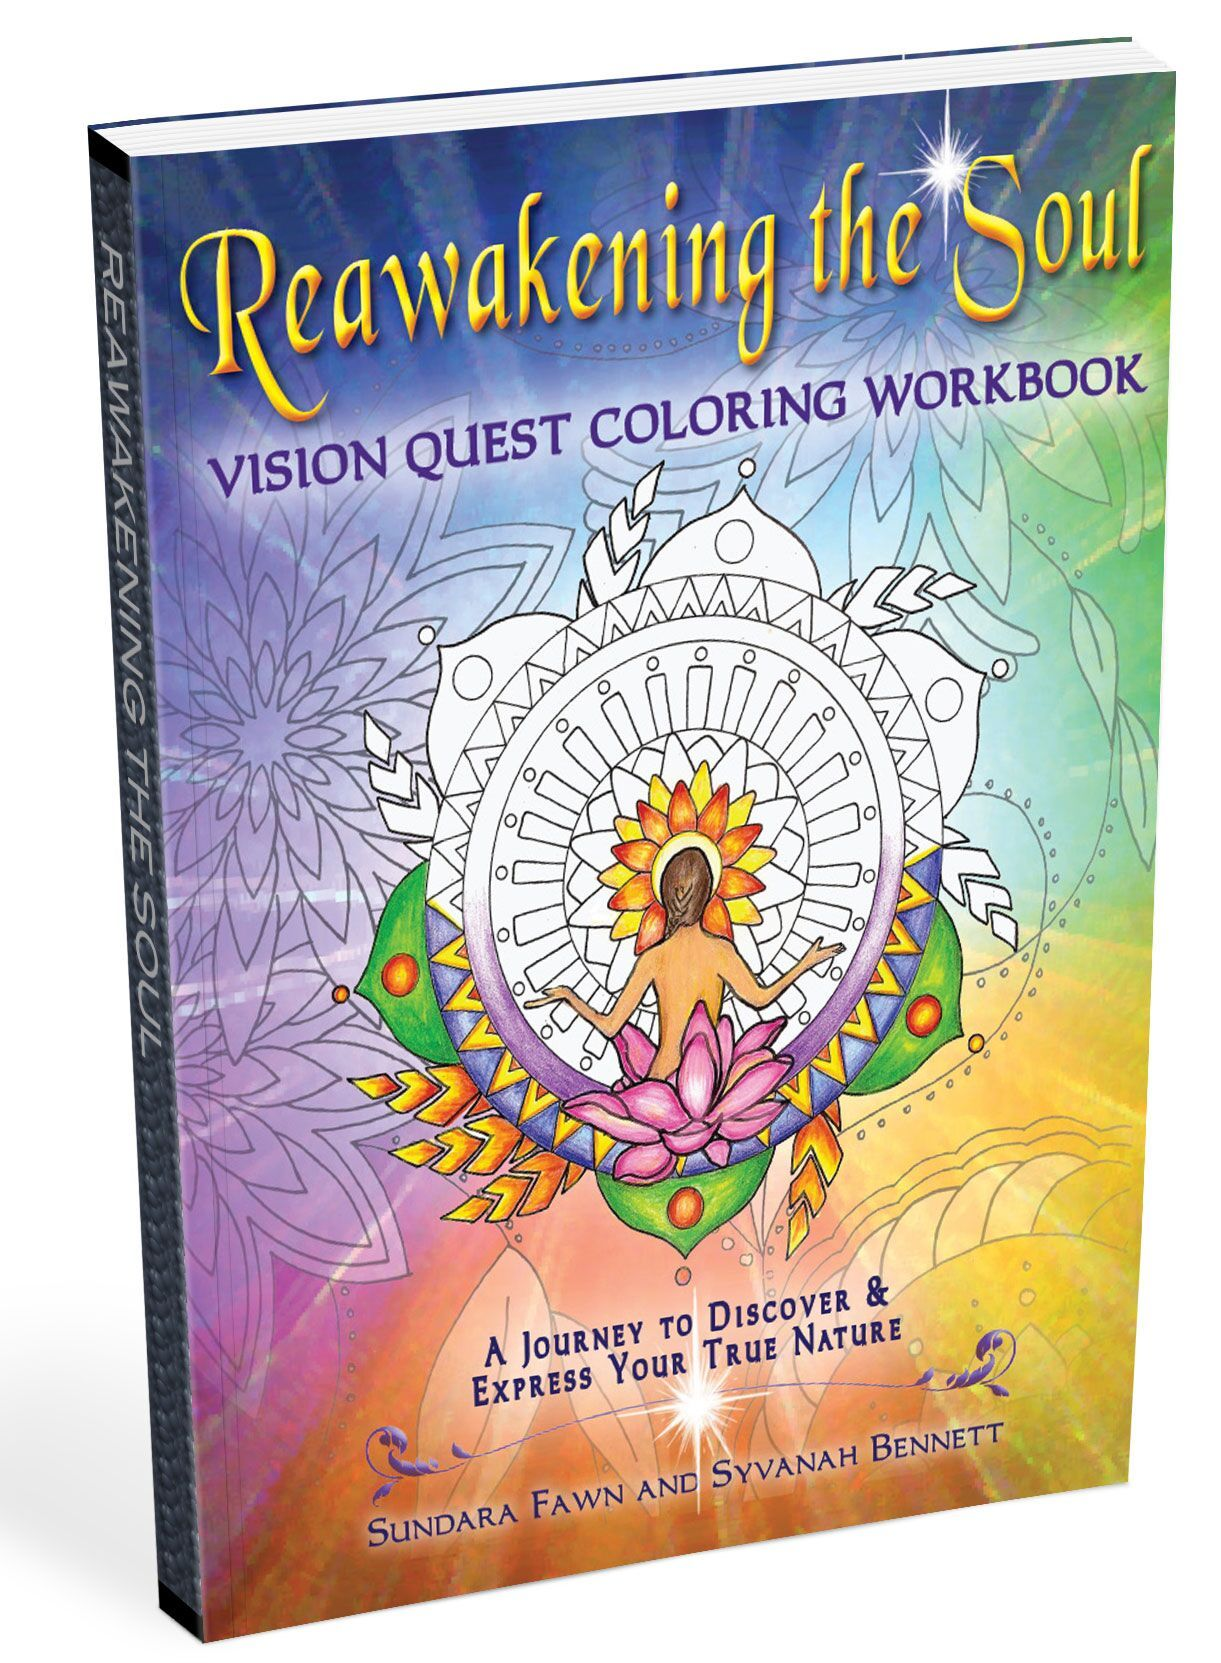 Vision Quest Coloring Workbook